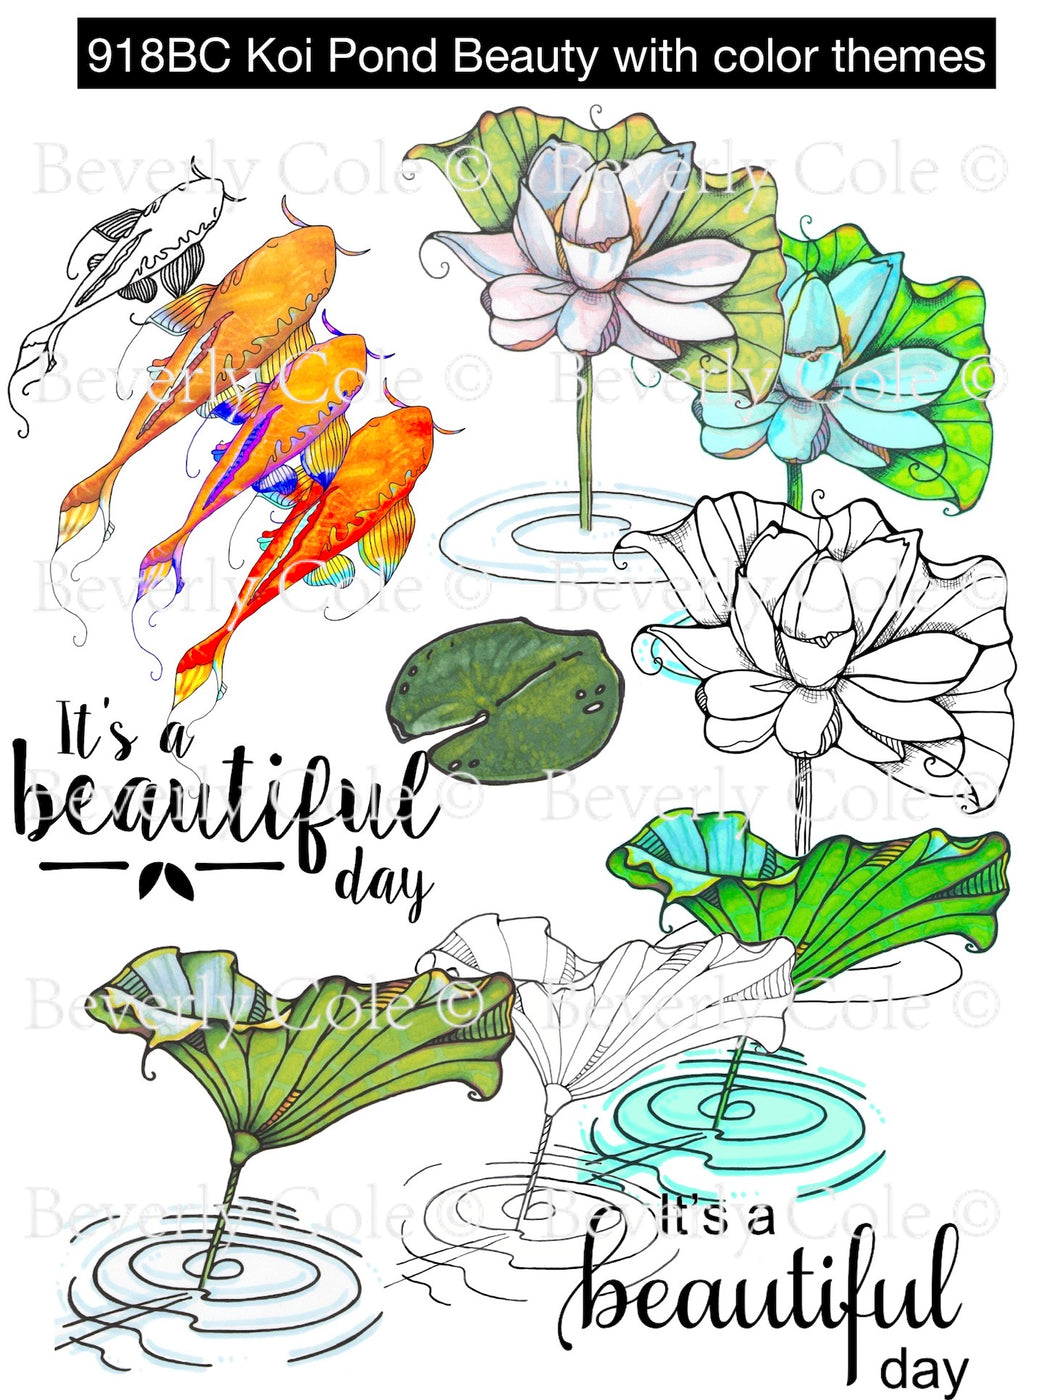 Koi Pond Beauty Digital Stamp Set [Digi918BC]